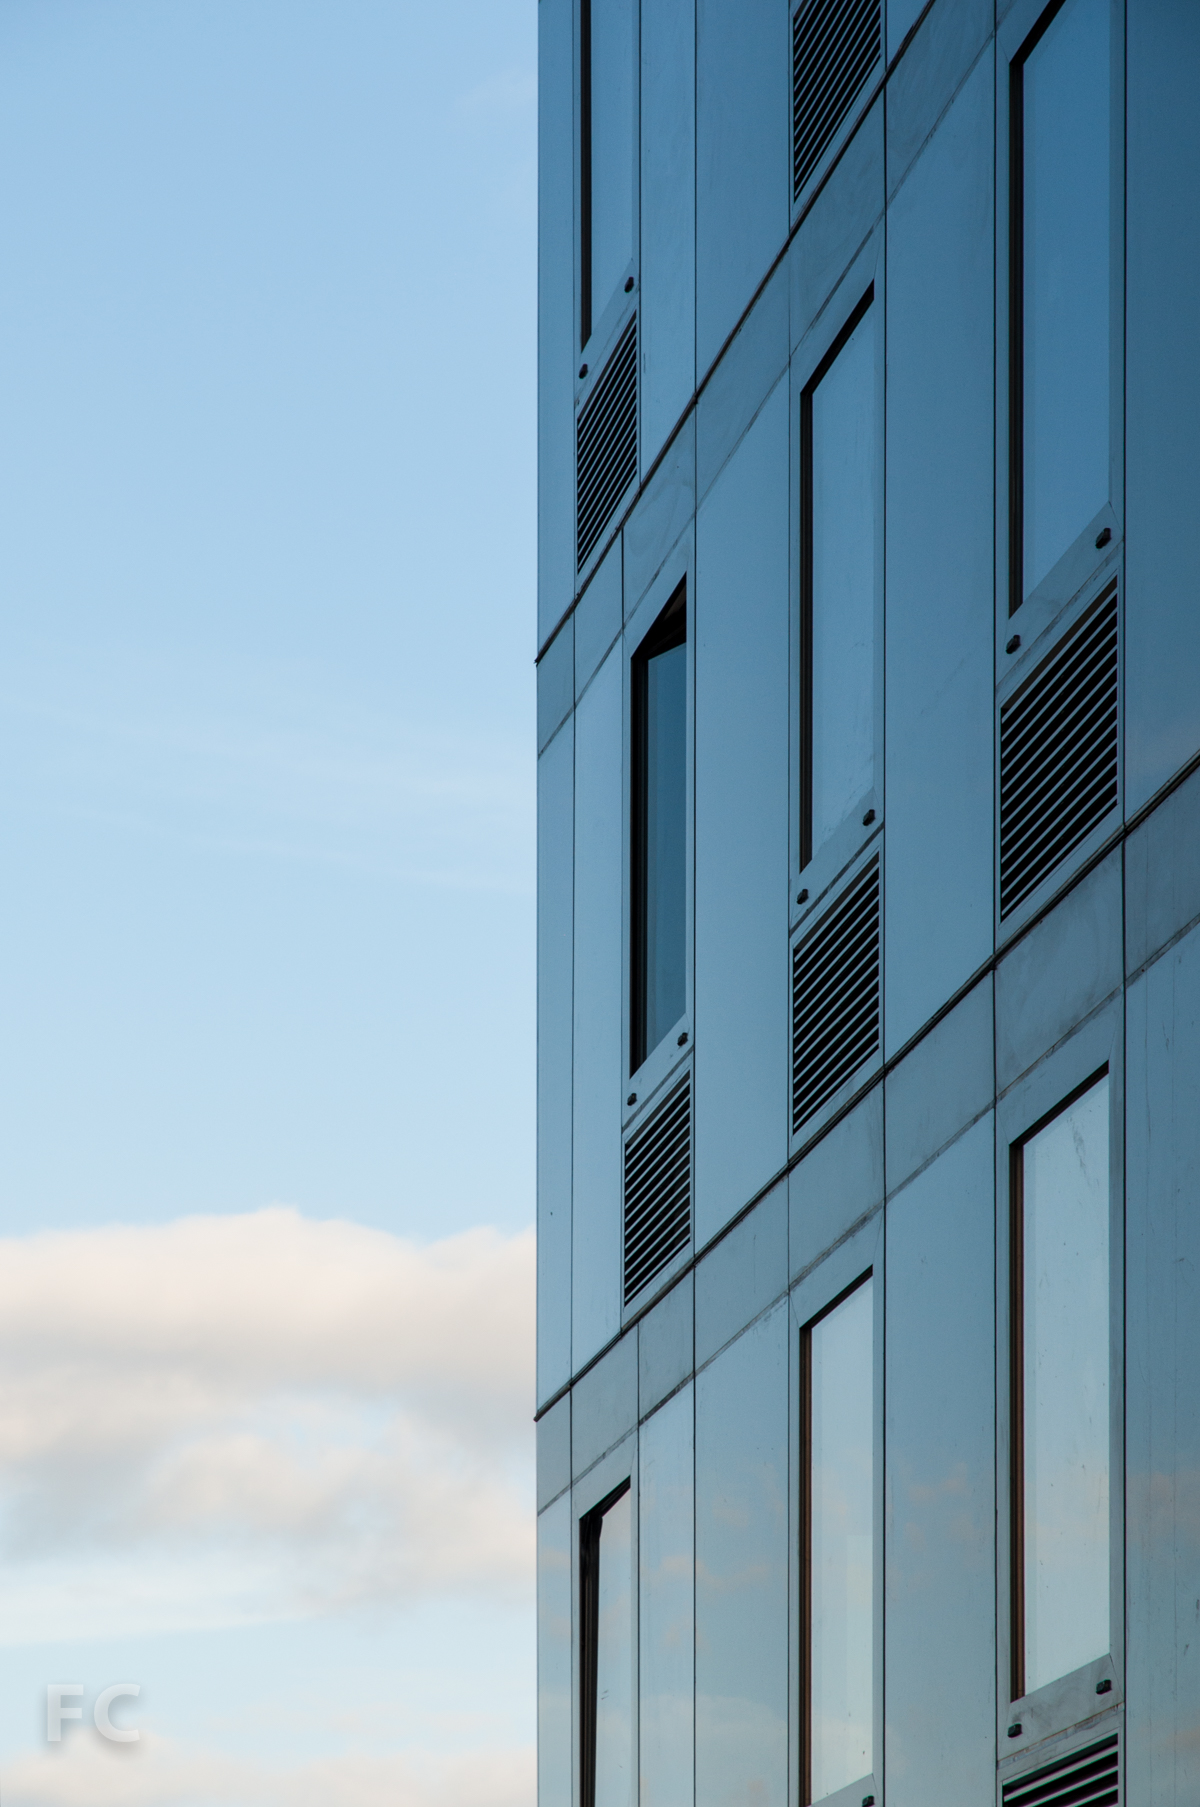 Detail of the curtain wall on Building B.